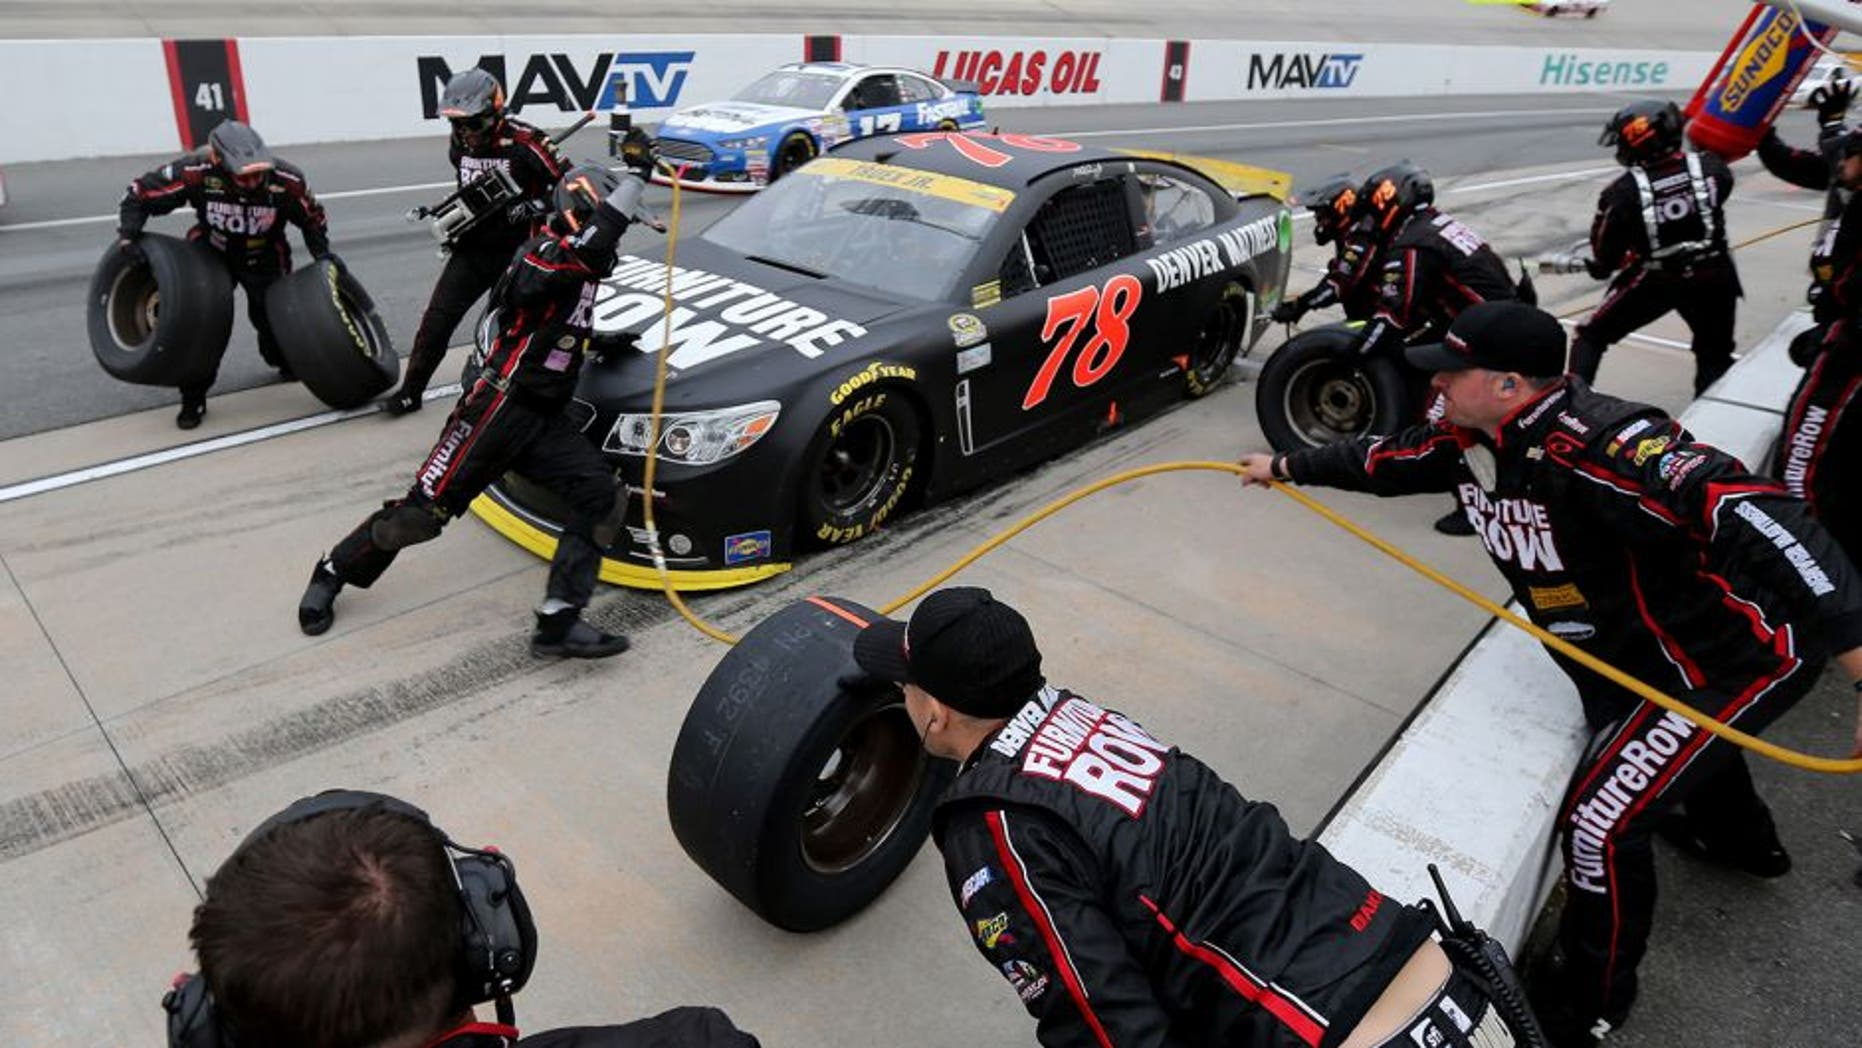 DOVER, DE - OCTOBER 04: Martin Truex Jr., driver of the #78 Furniture Row/Visser Precision Chevrolet, pits during the NASCAR Sprint Cup Series AAA 400 at Dover International Speedway on October 4, 2015 in Dover, Delaware. (Photo by Jerry Markland/Getty Images)